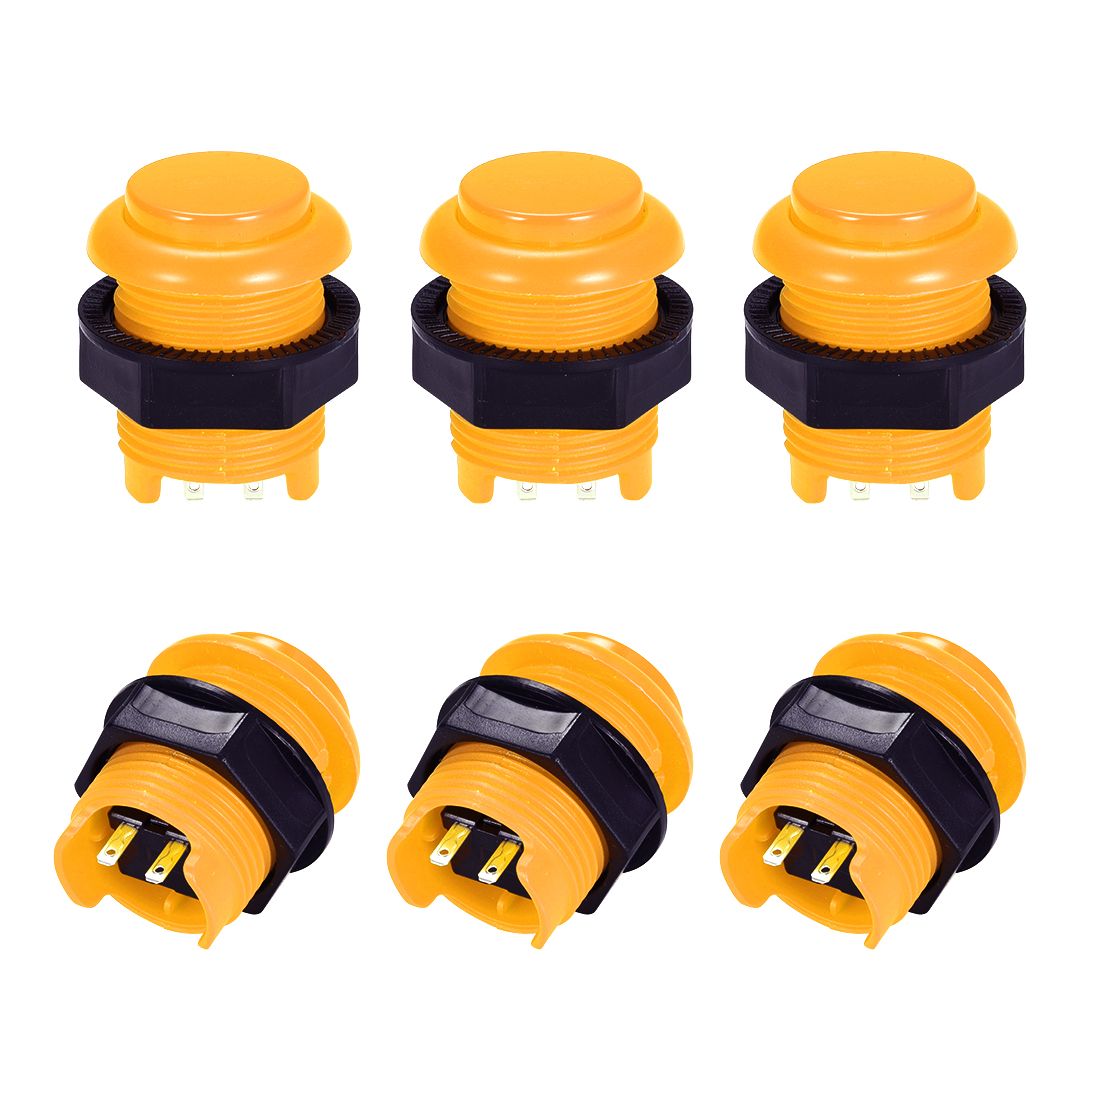 M28 Momentary Game Push Button Switch for Arcade Video Games Yellow 6pcs